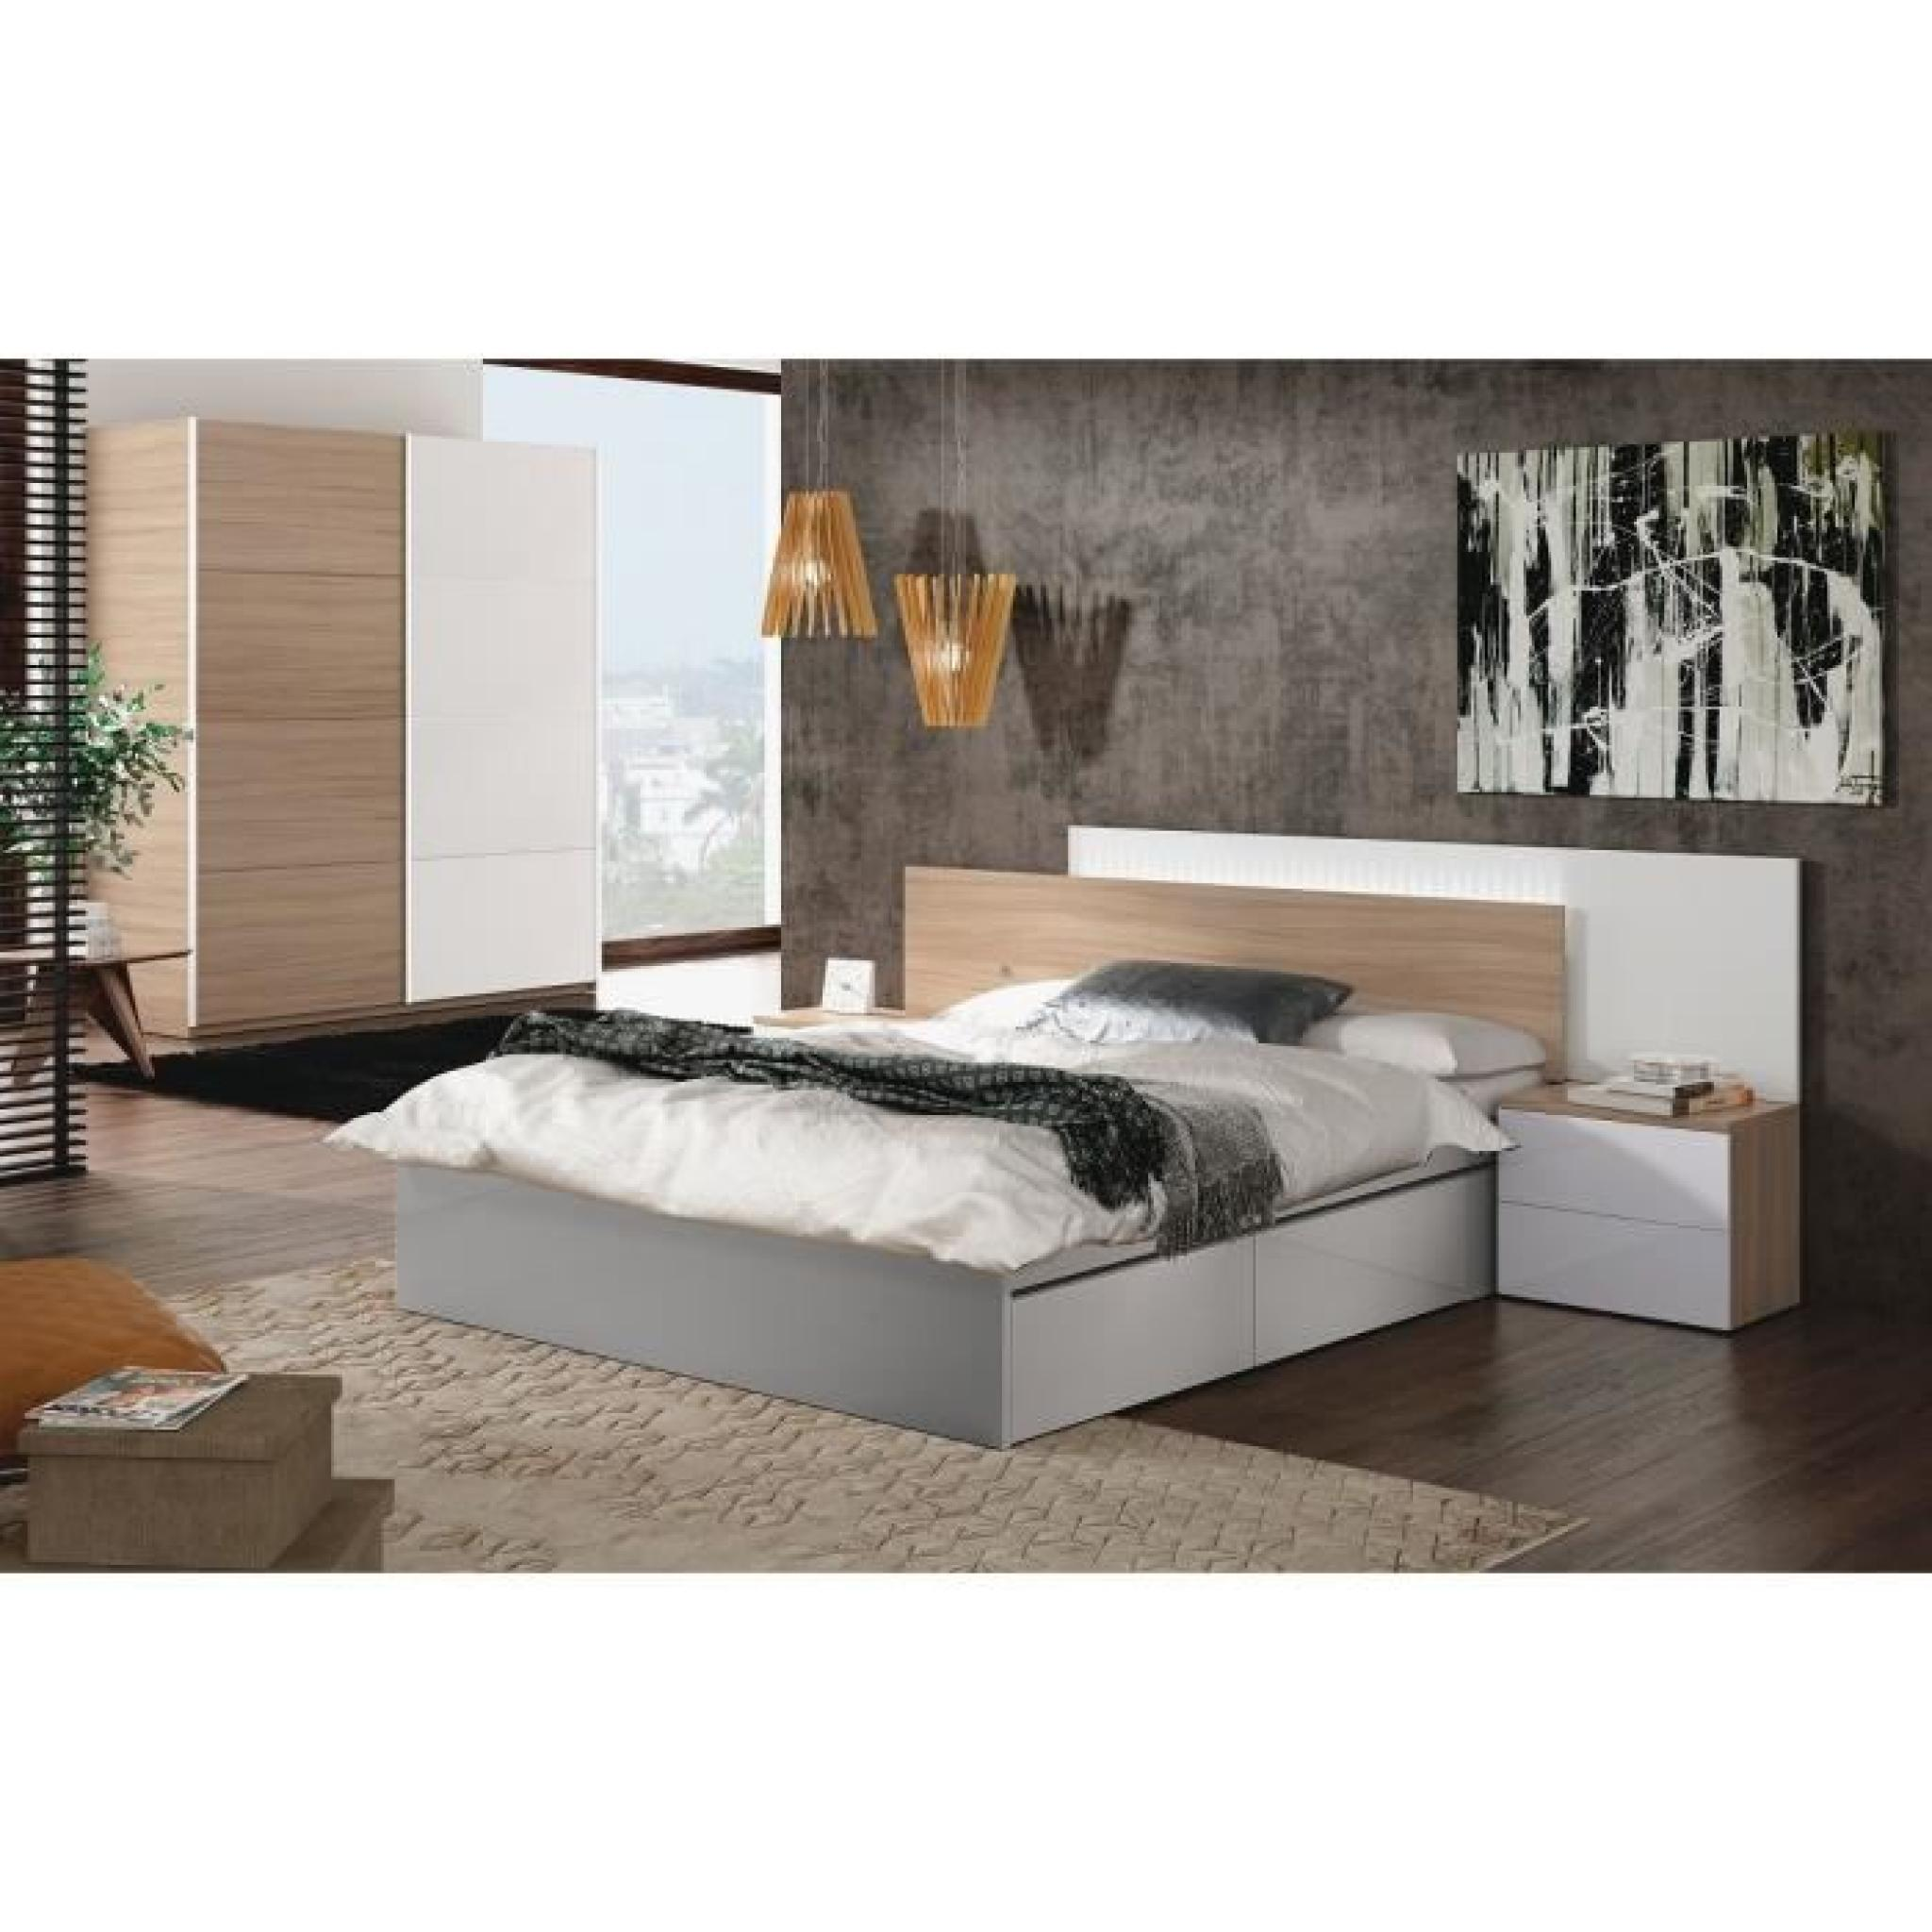 avina t te de lit avec led 258 cm 2 chevets blanc brillant et d cor bois achat vente tete. Black Bedroom Furniture Sets. Home Design Ideas